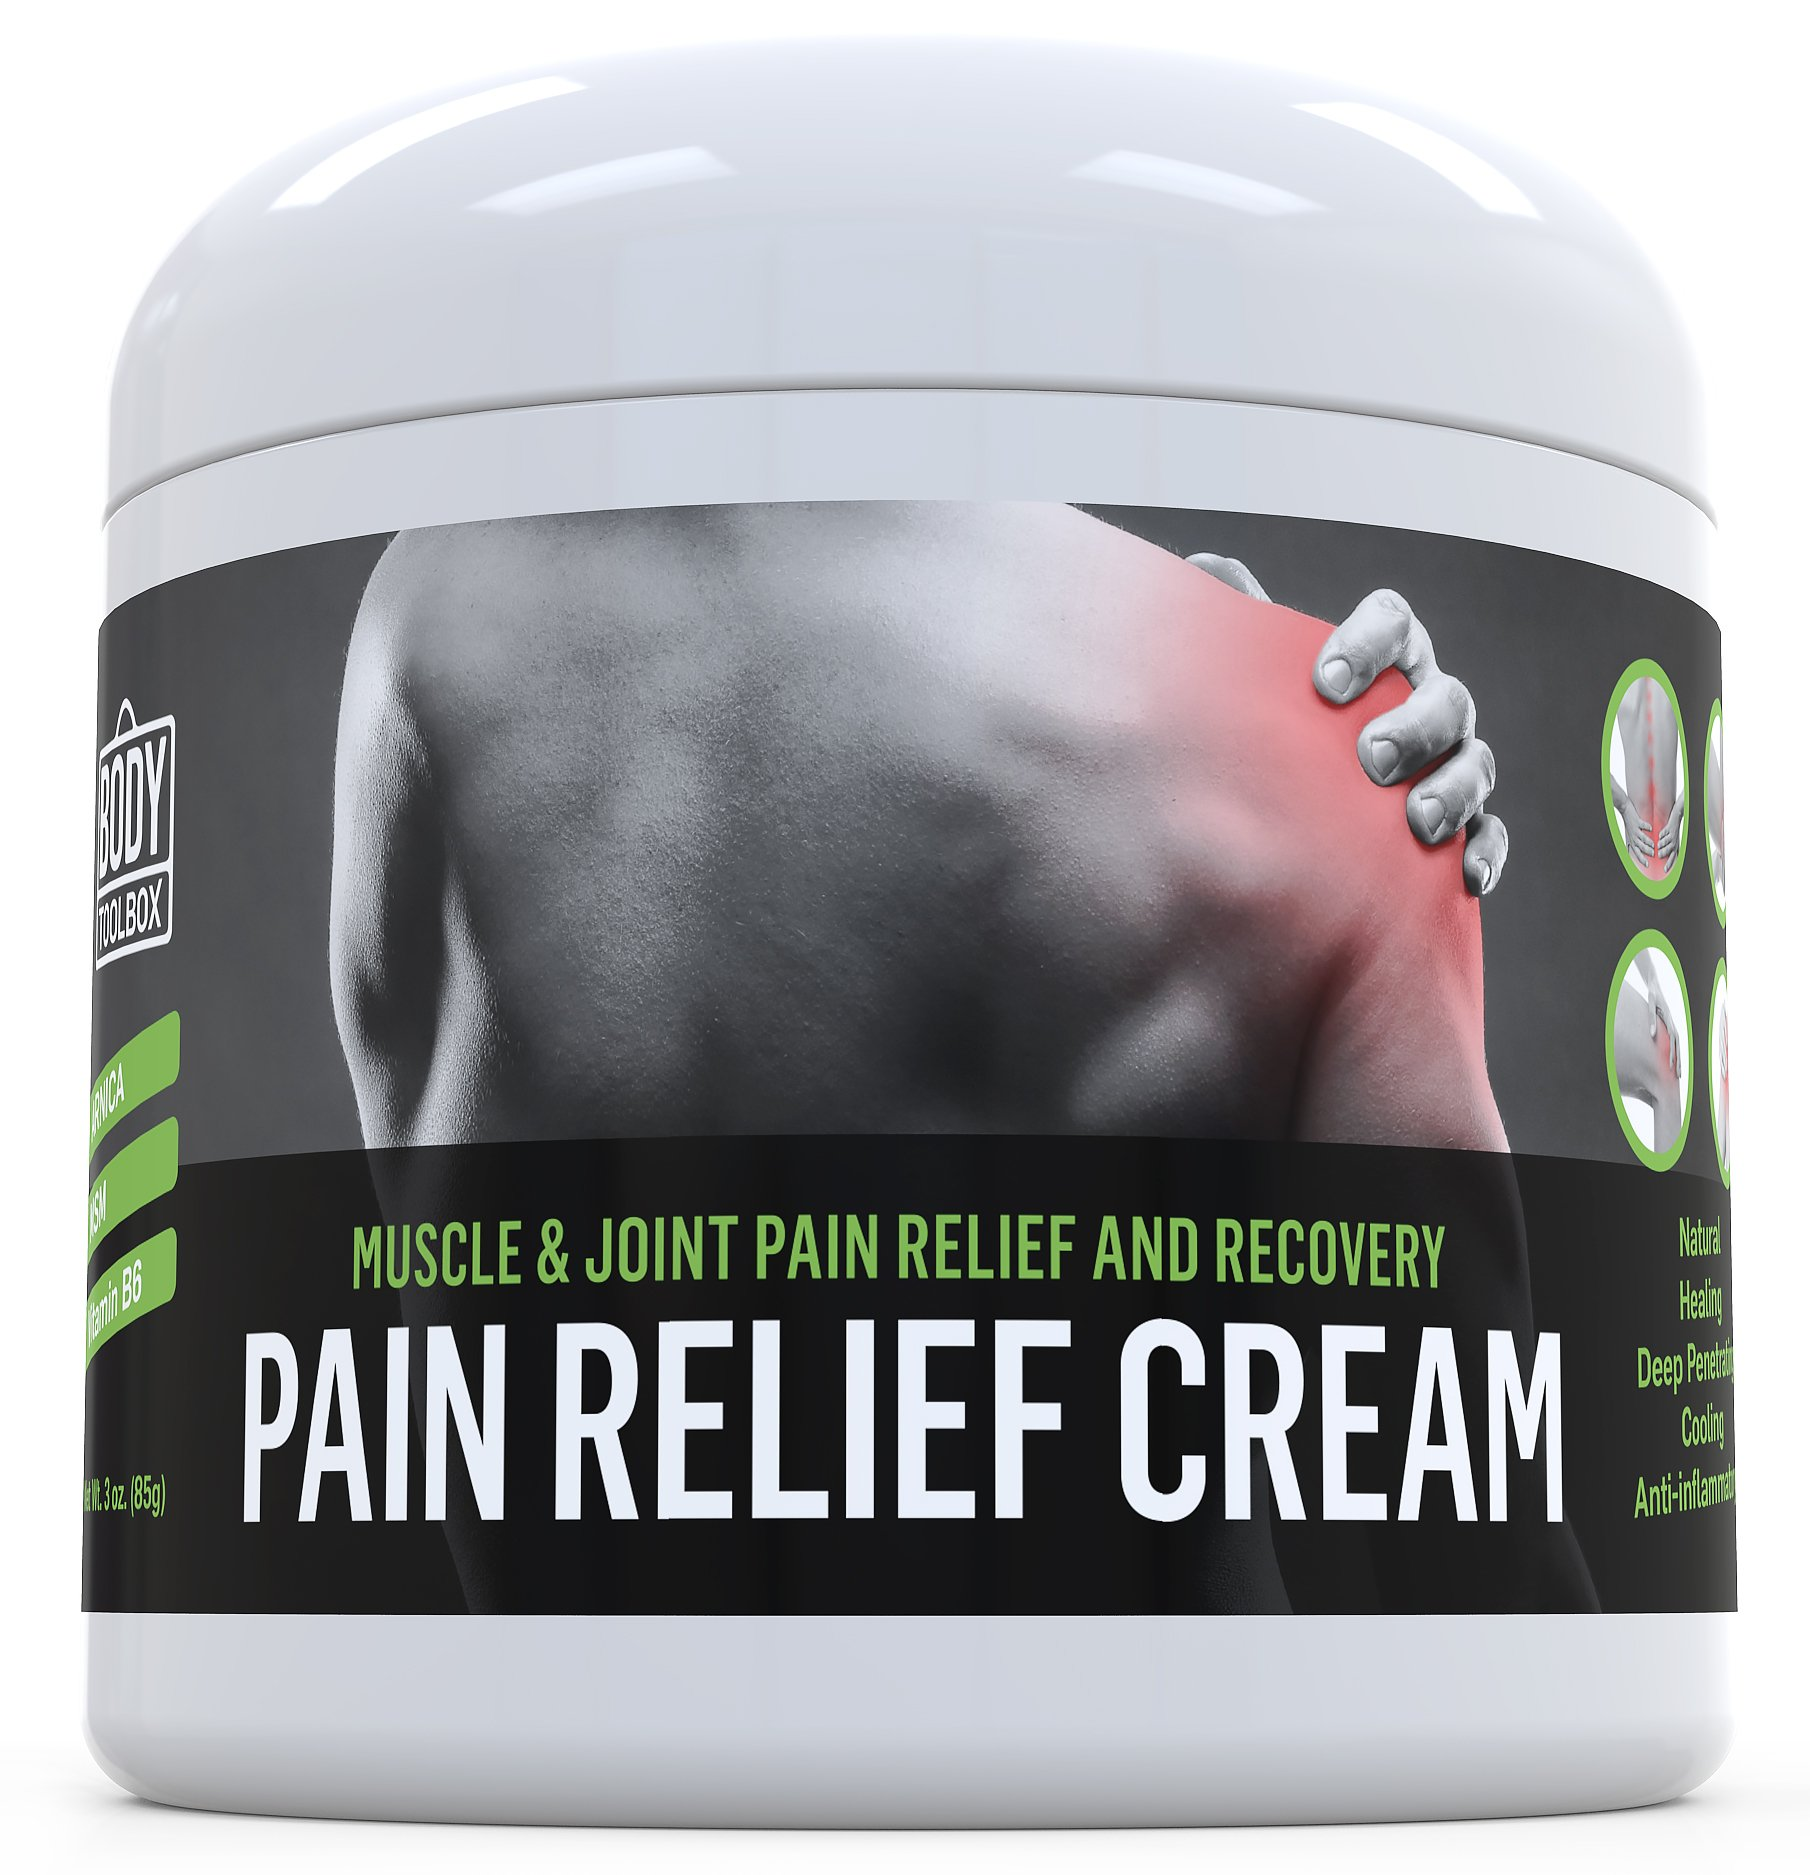 Pain Relief Cream (3 Oz) for Arthritis - Sore Muscles and Joint Pain - Analgesic Anti Inflammatory Pain Reliever for Recovery & Healing of Back Pain - Sprains, Aches & Bruises by Body Toolbox by Body Toolbox